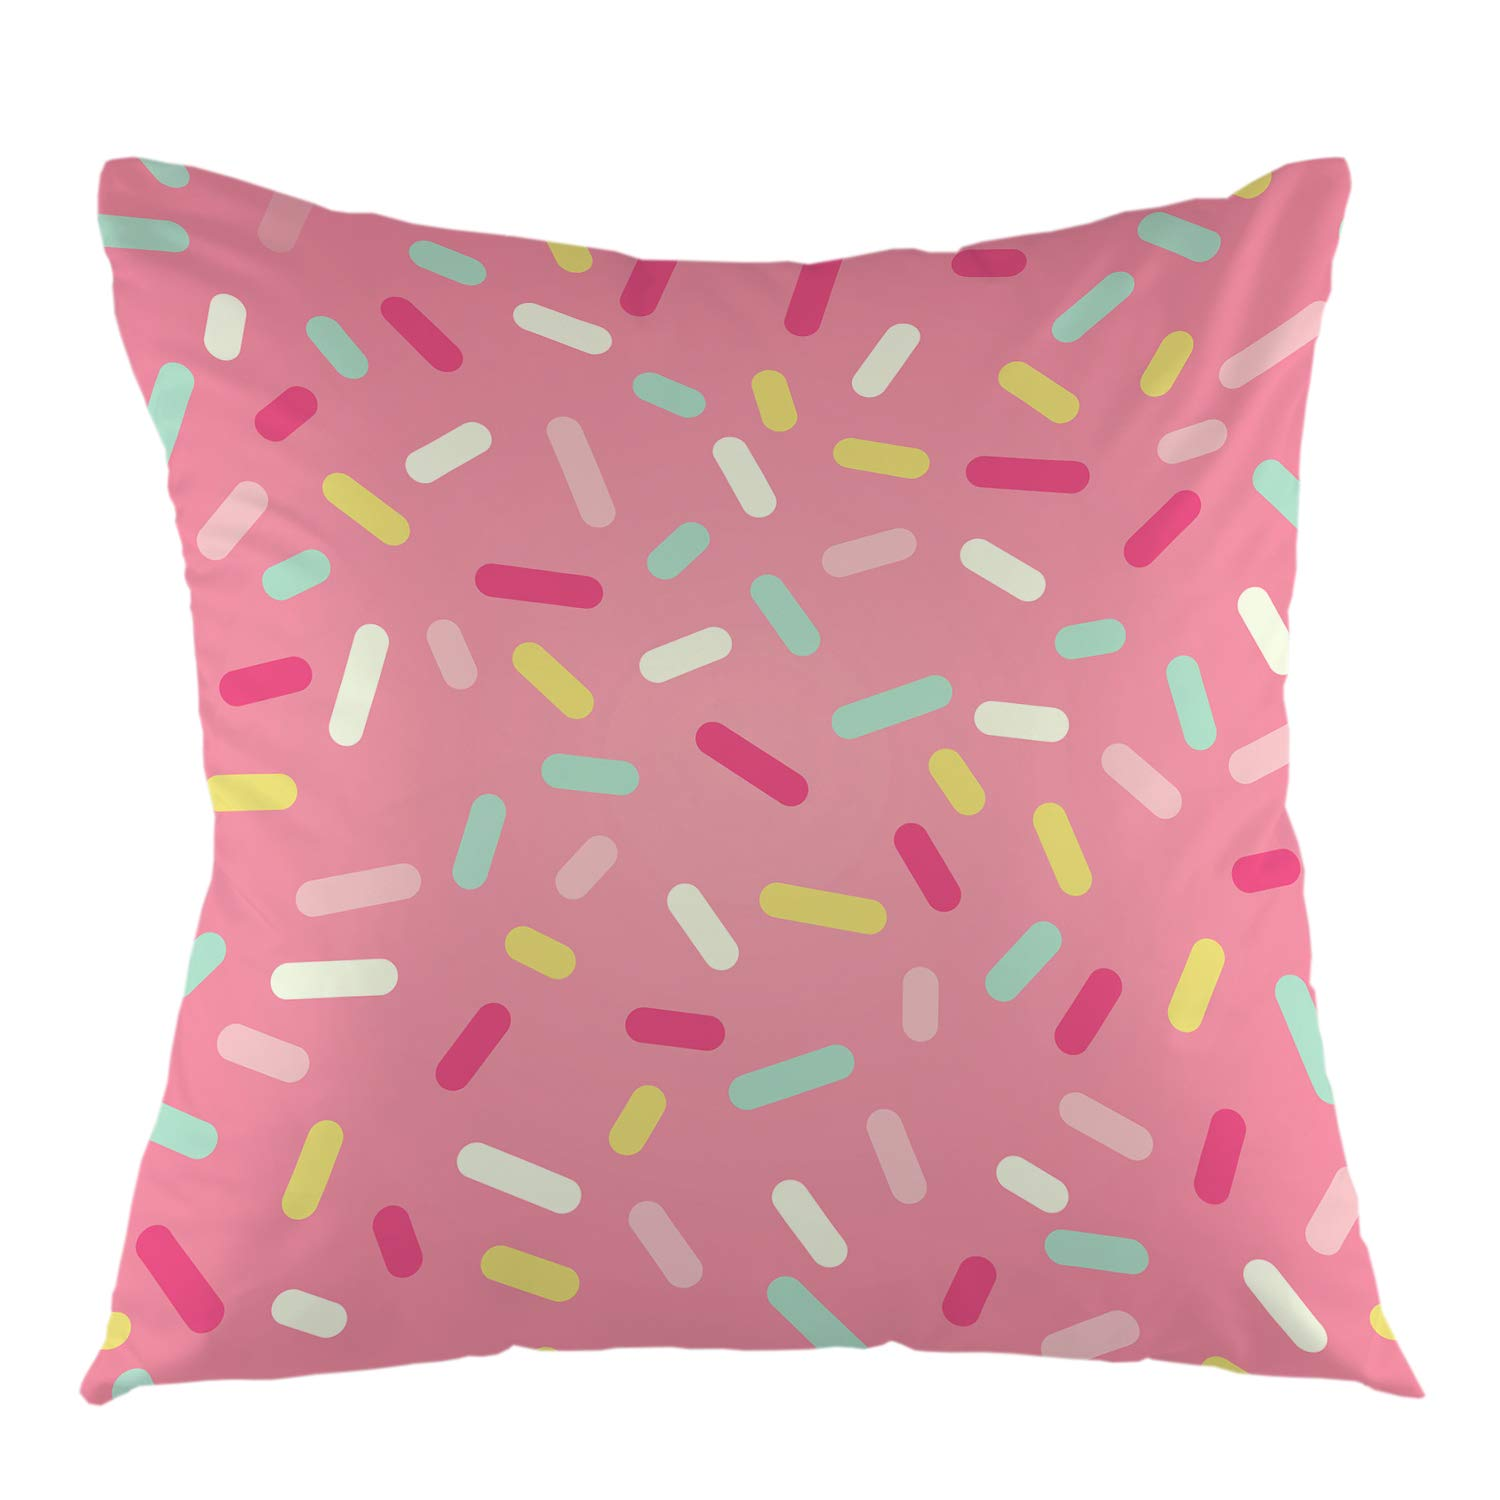 """oFloral Geometric Throw Pillow Cover Pink Decorative Donut Glaze Confetti Throw Pillow Case Square Cushion Case Home Decor for Sofa Bedroom Livingroom 18"""" x 18"""" inch Pillowcase"""